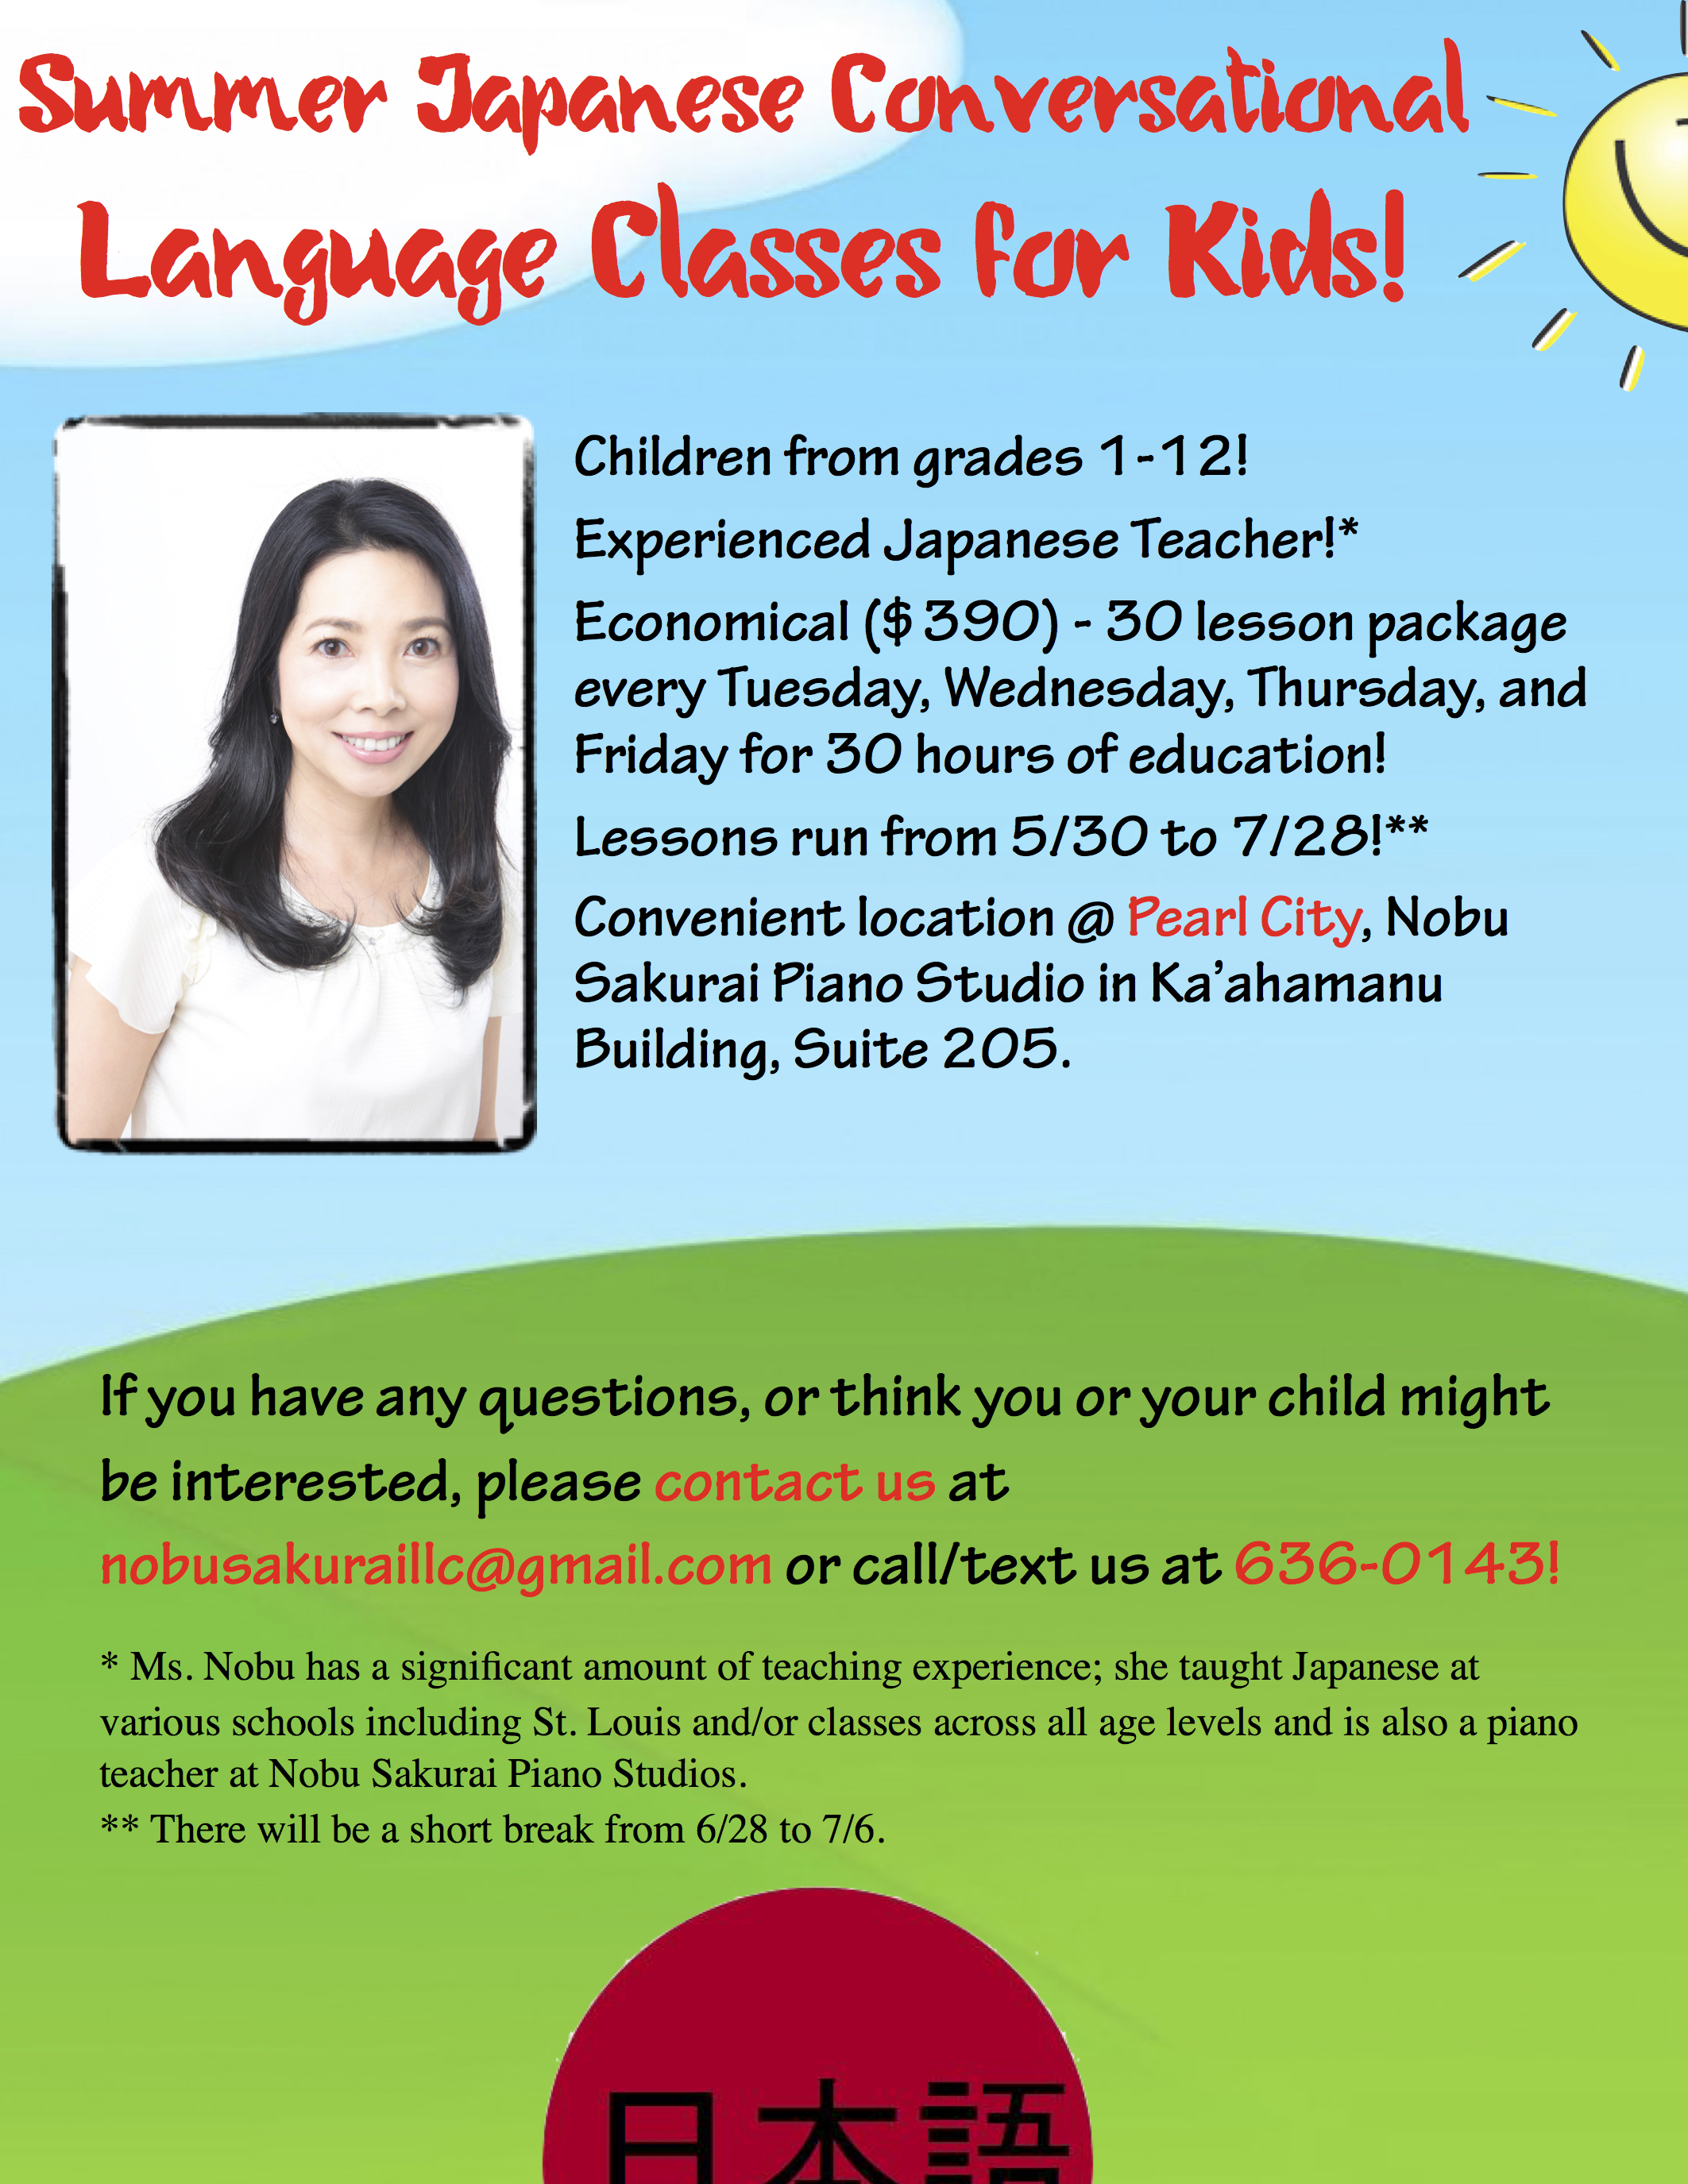 RYTHMIQUE KIDS! Payment Plans + Japanese Kids Class